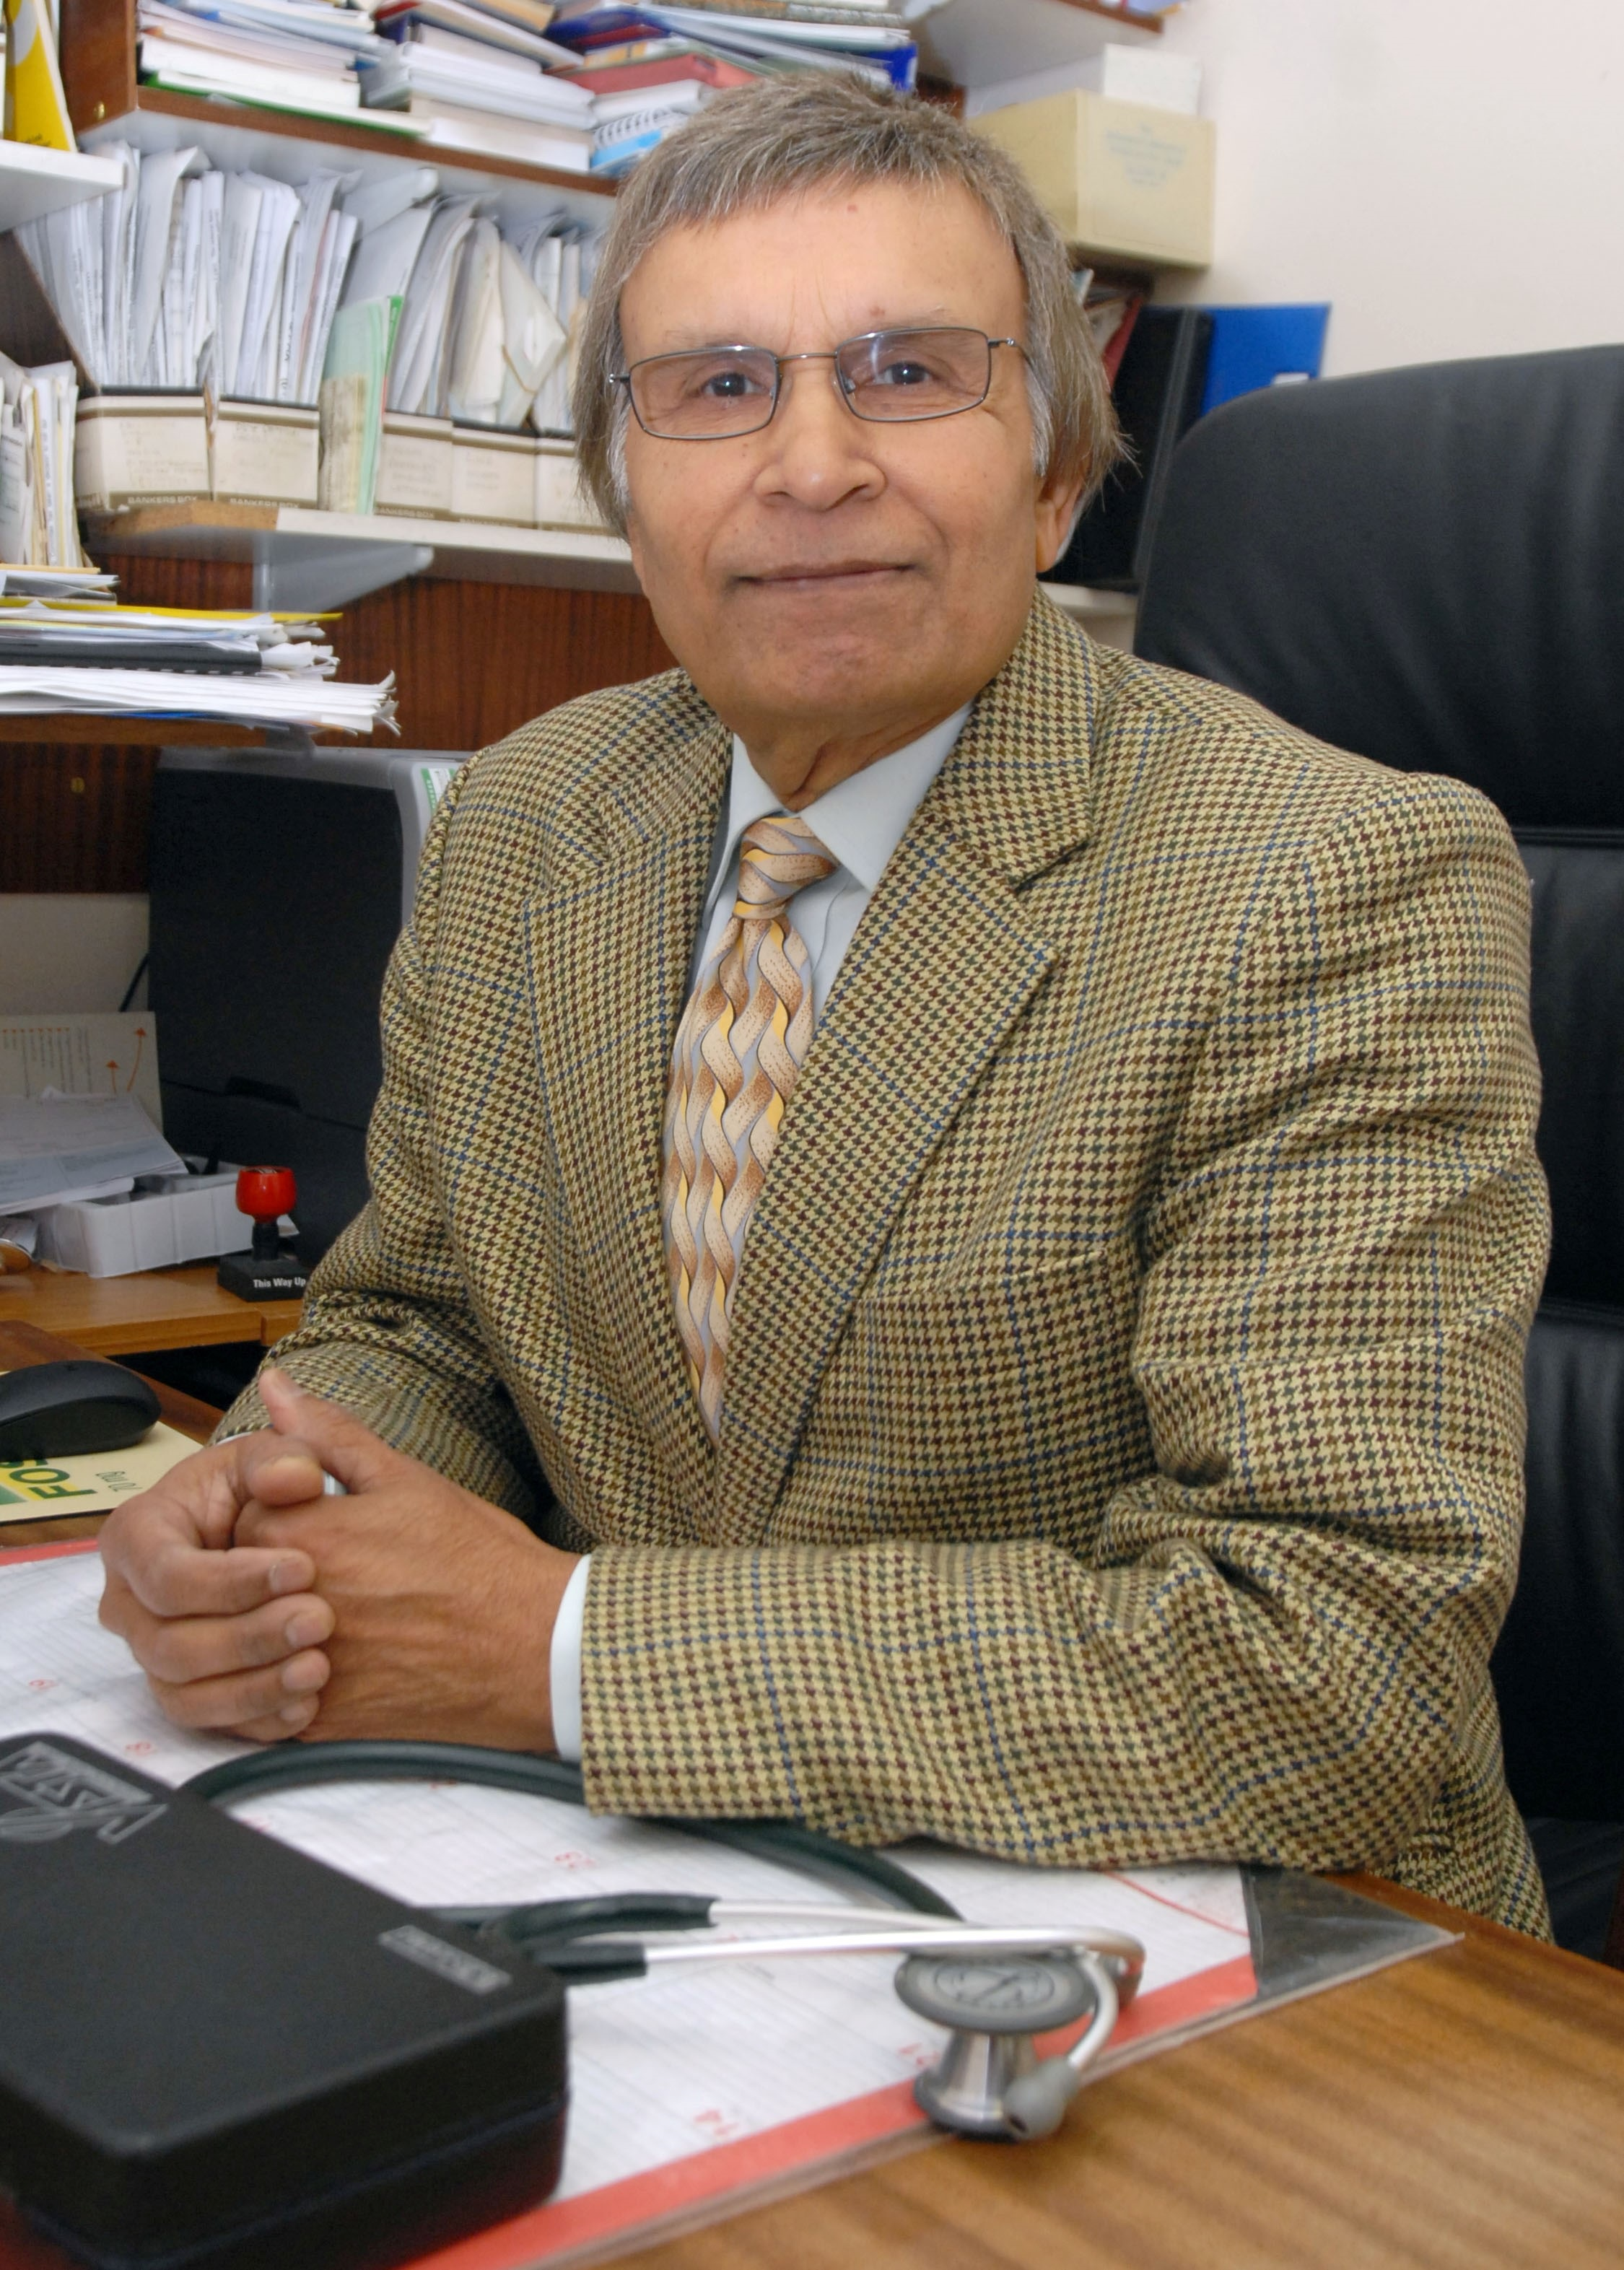 Dr Joginder Pall who is retiring after 37 years as a GP in Dudley